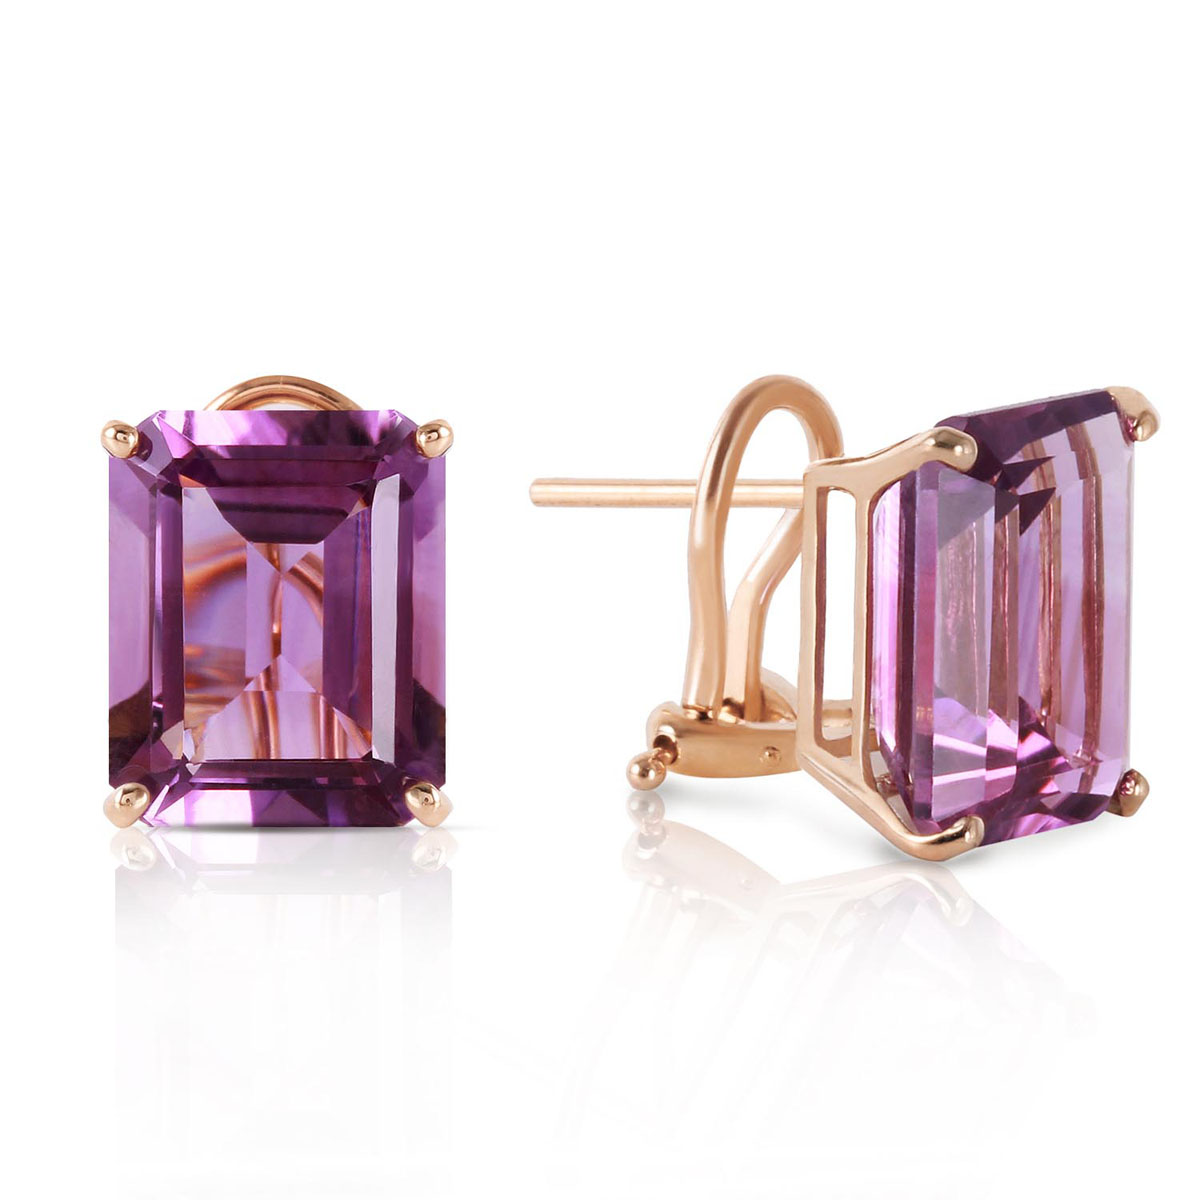 Amethyst Stud Earrings 13 ctw in 9ct Gold